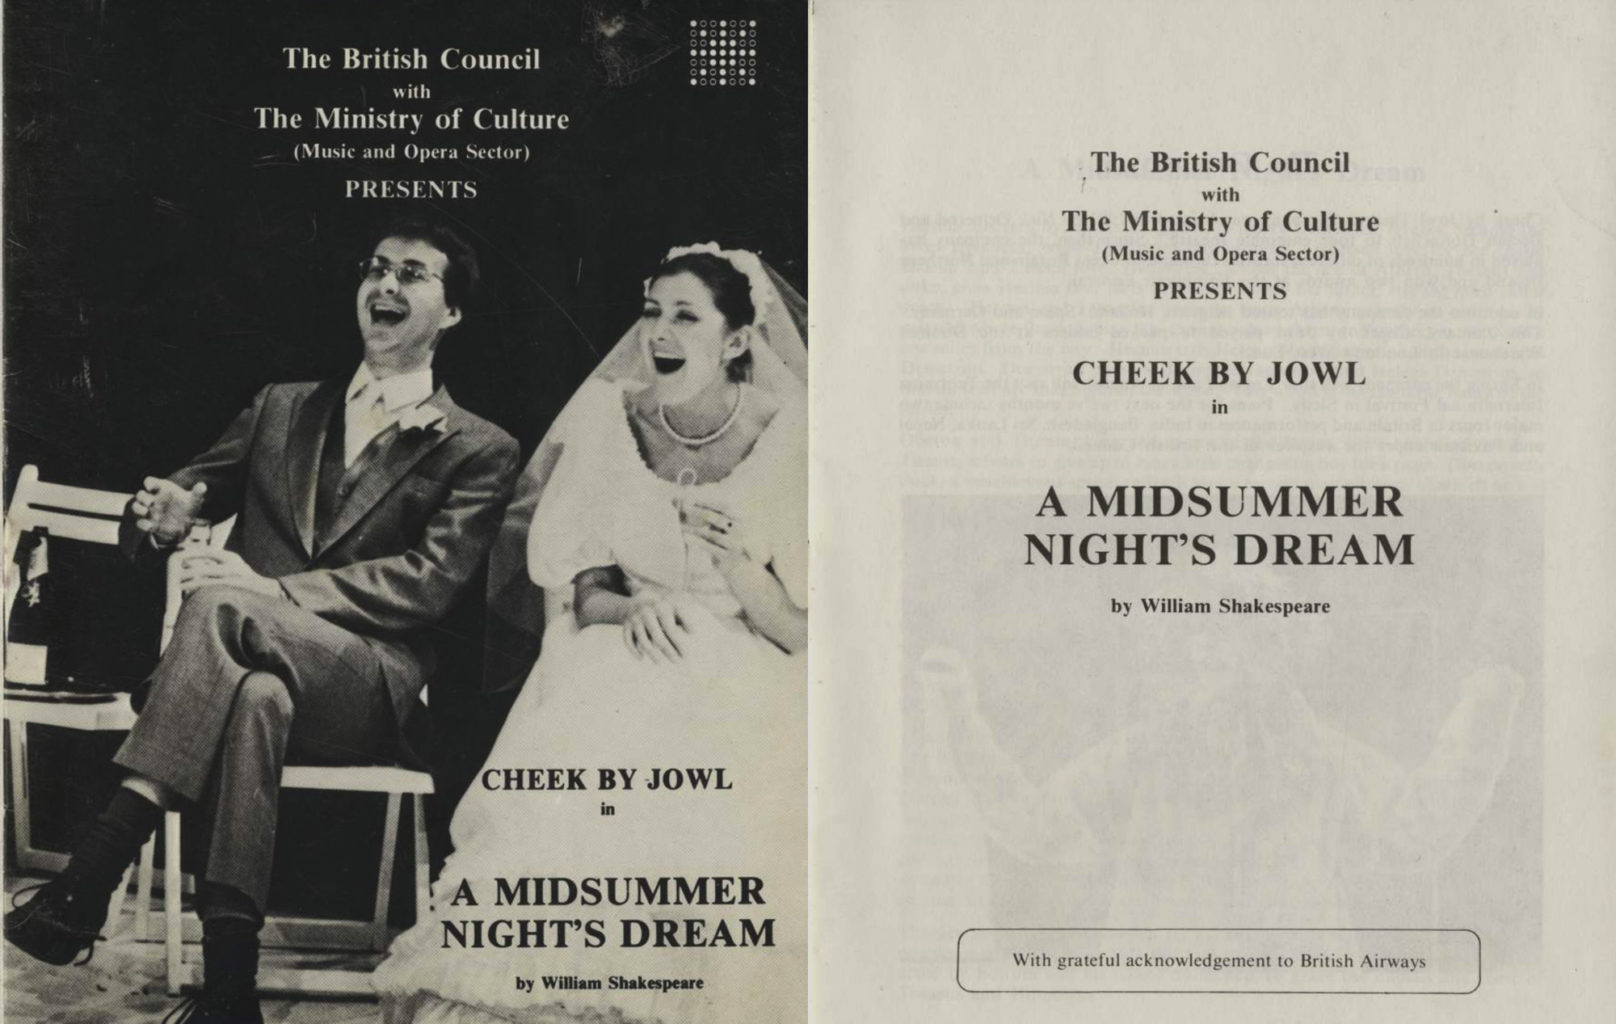 A Midsummer Night's Dream British Council programme from 1985